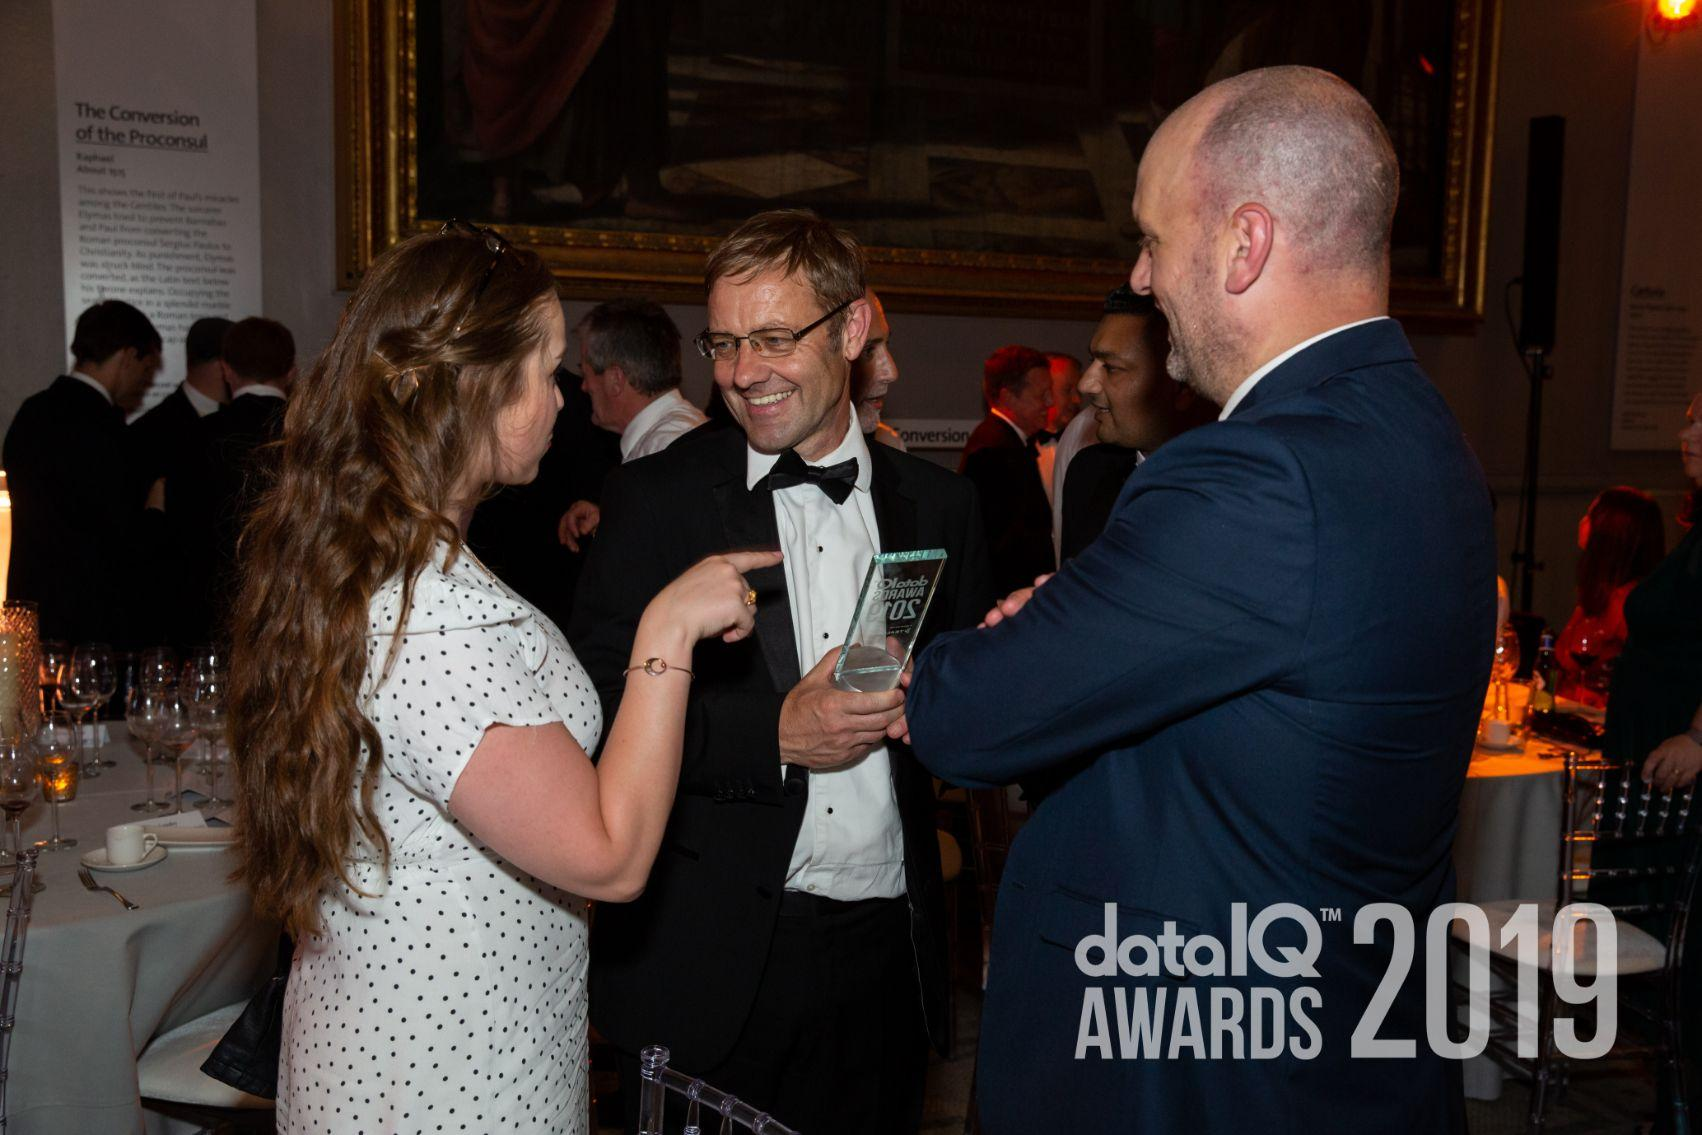 Awards 2019 Image 8